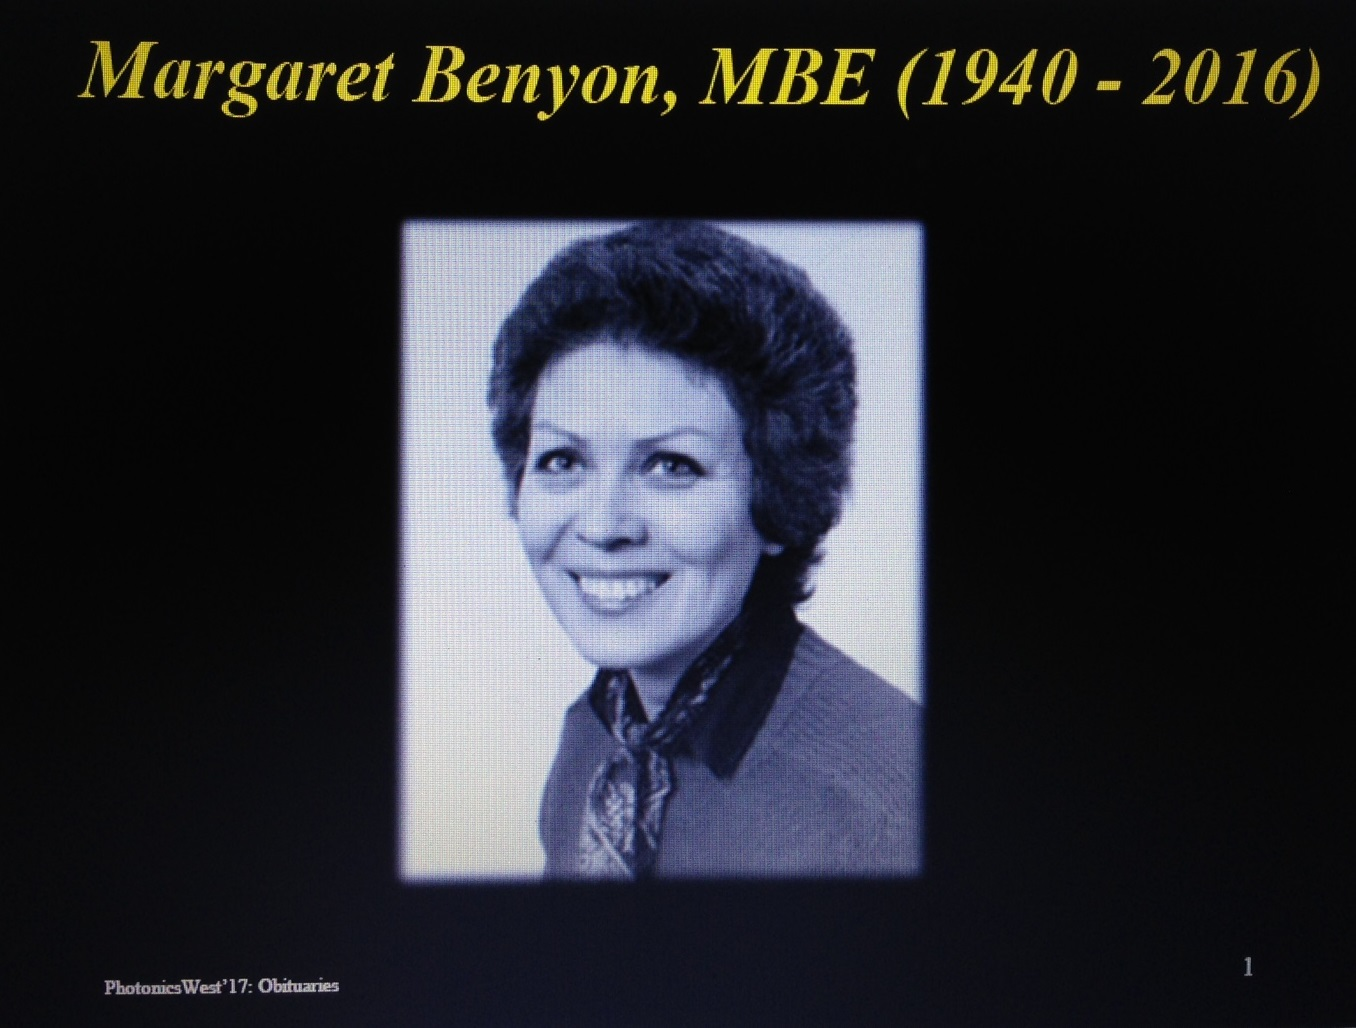 Margaret Benyon